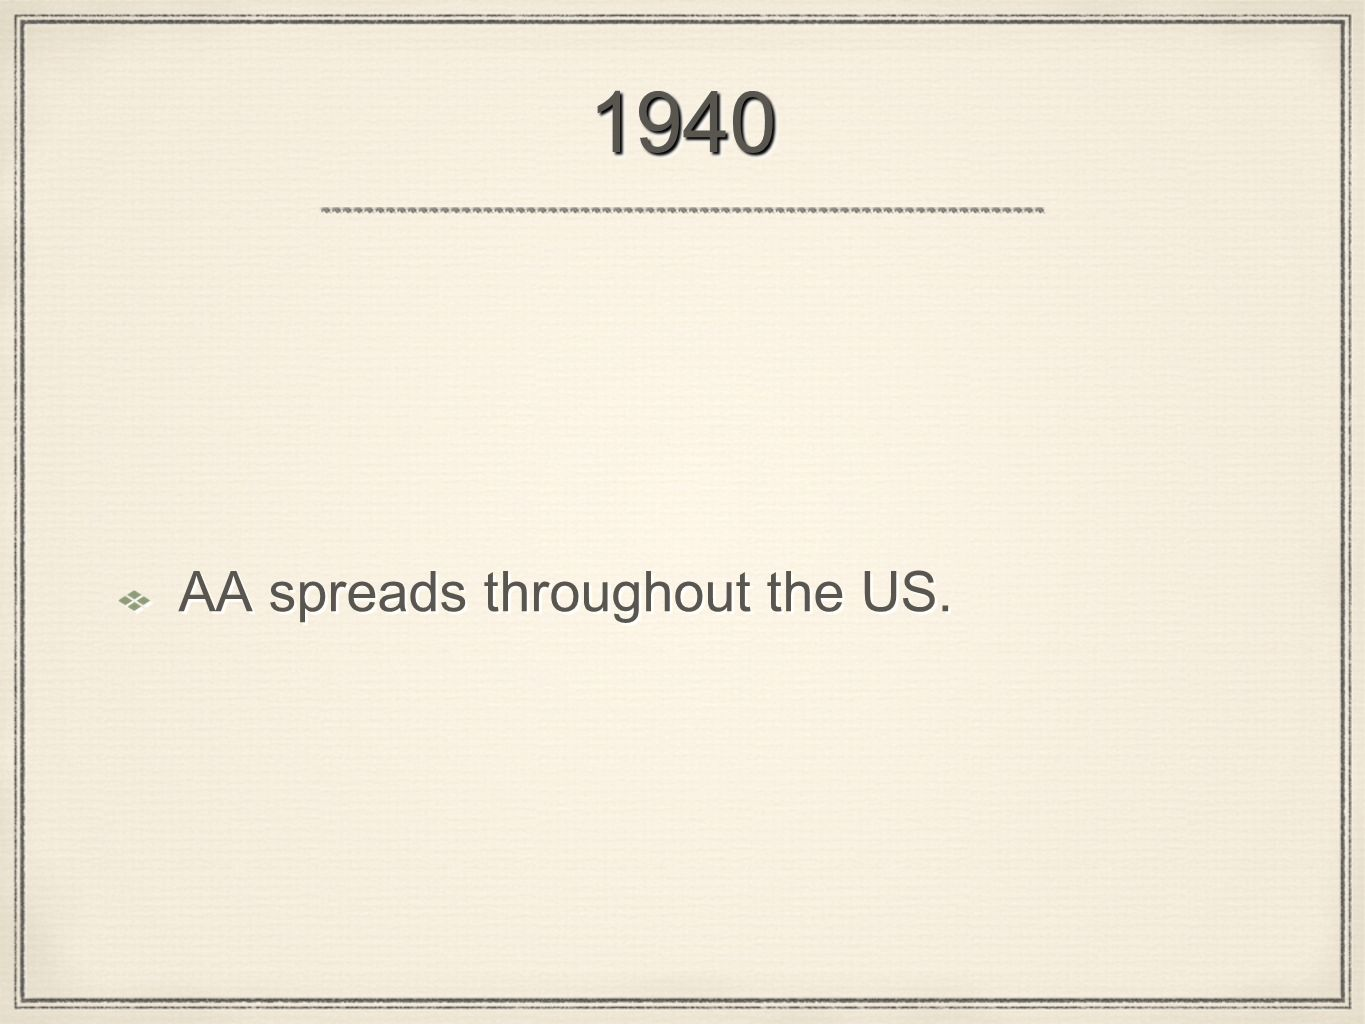 19401940 AA spreads throughout the US.